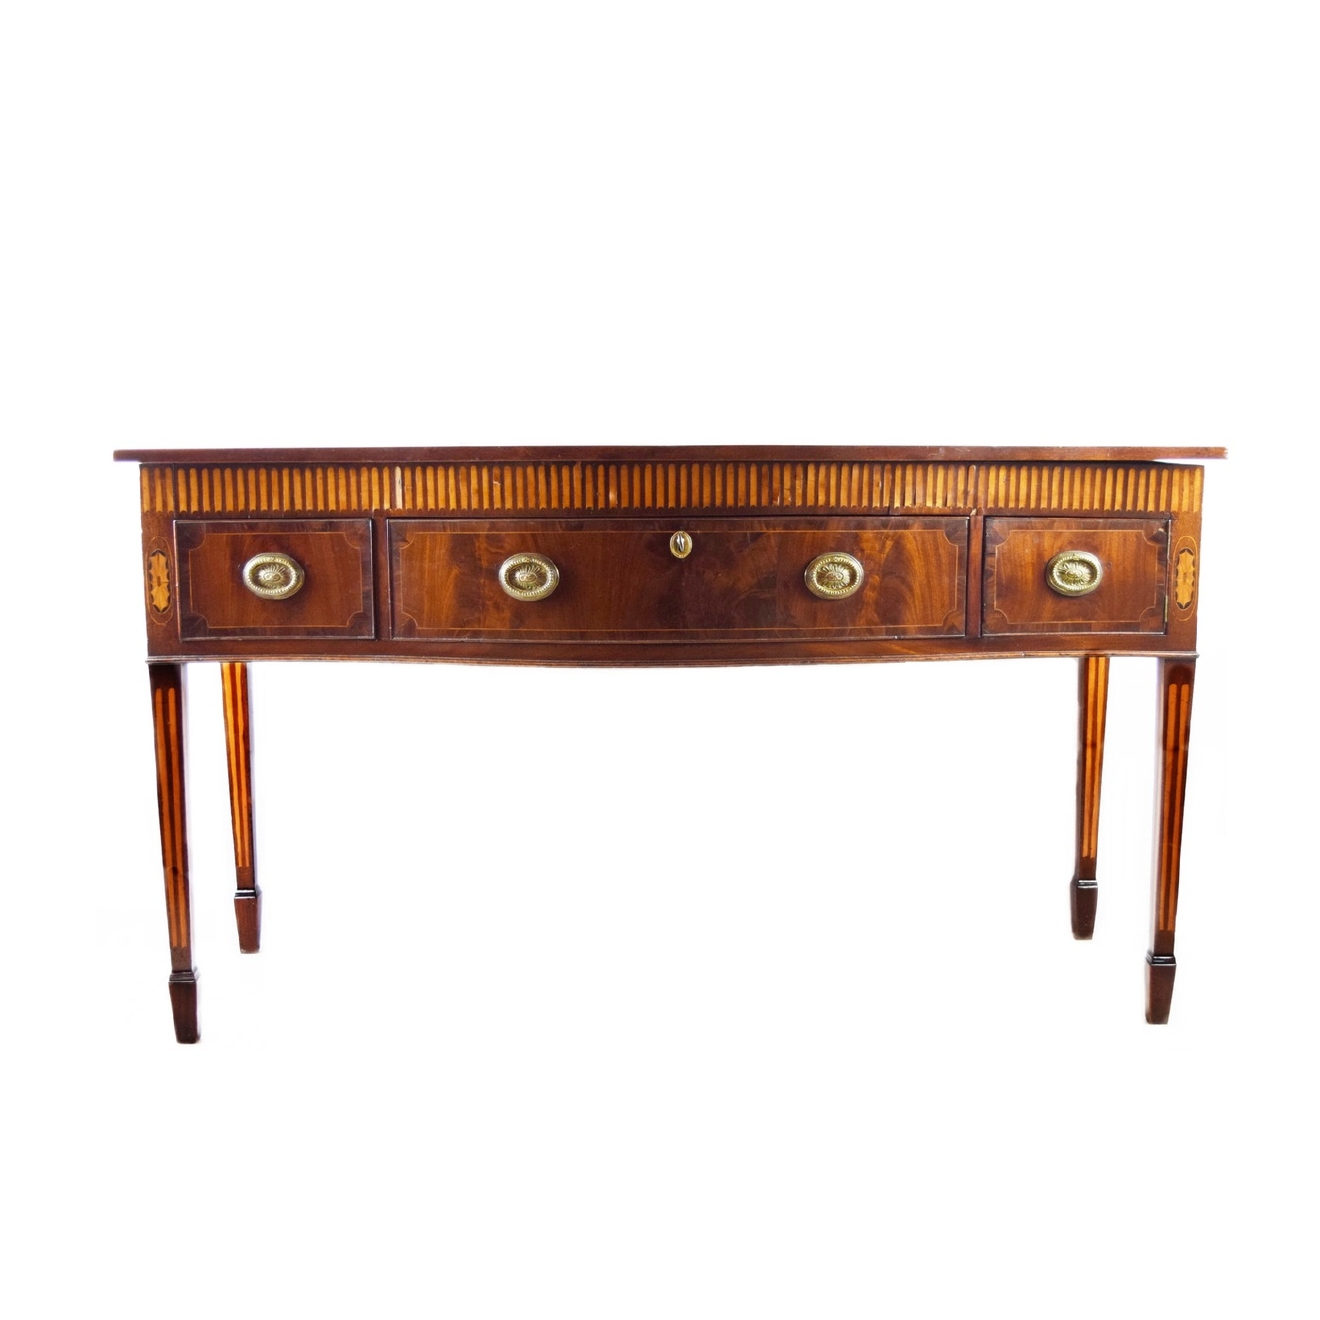 Circa 1800 Welsh Serpentine Front Serving Table in Mahogany and Yew / Image courtesy of Everything But The House // Published: 10.15.16